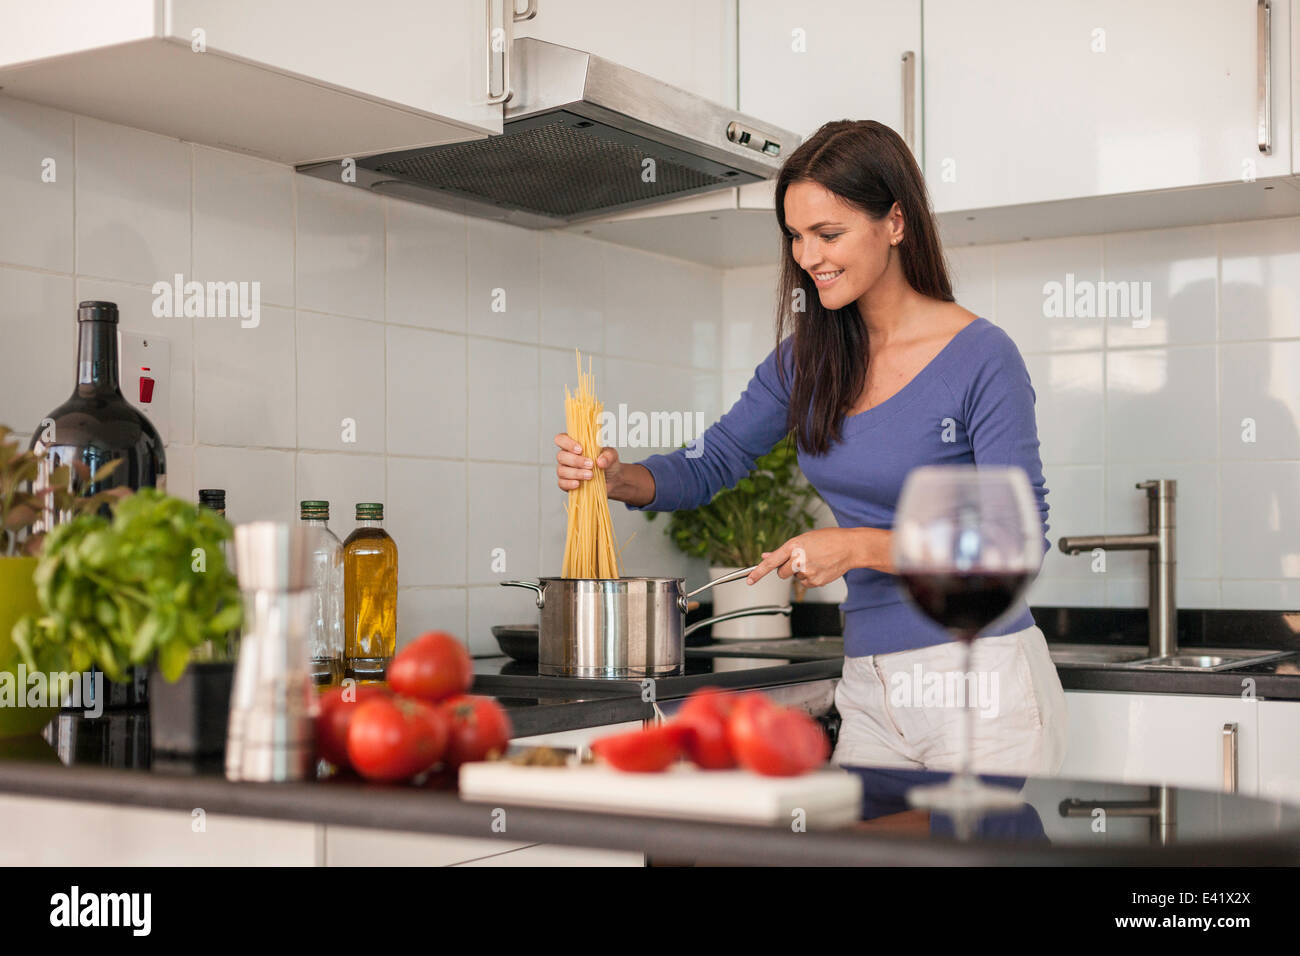 young woman cooking spaghetti in kitchen stock photo 71342514 alamy